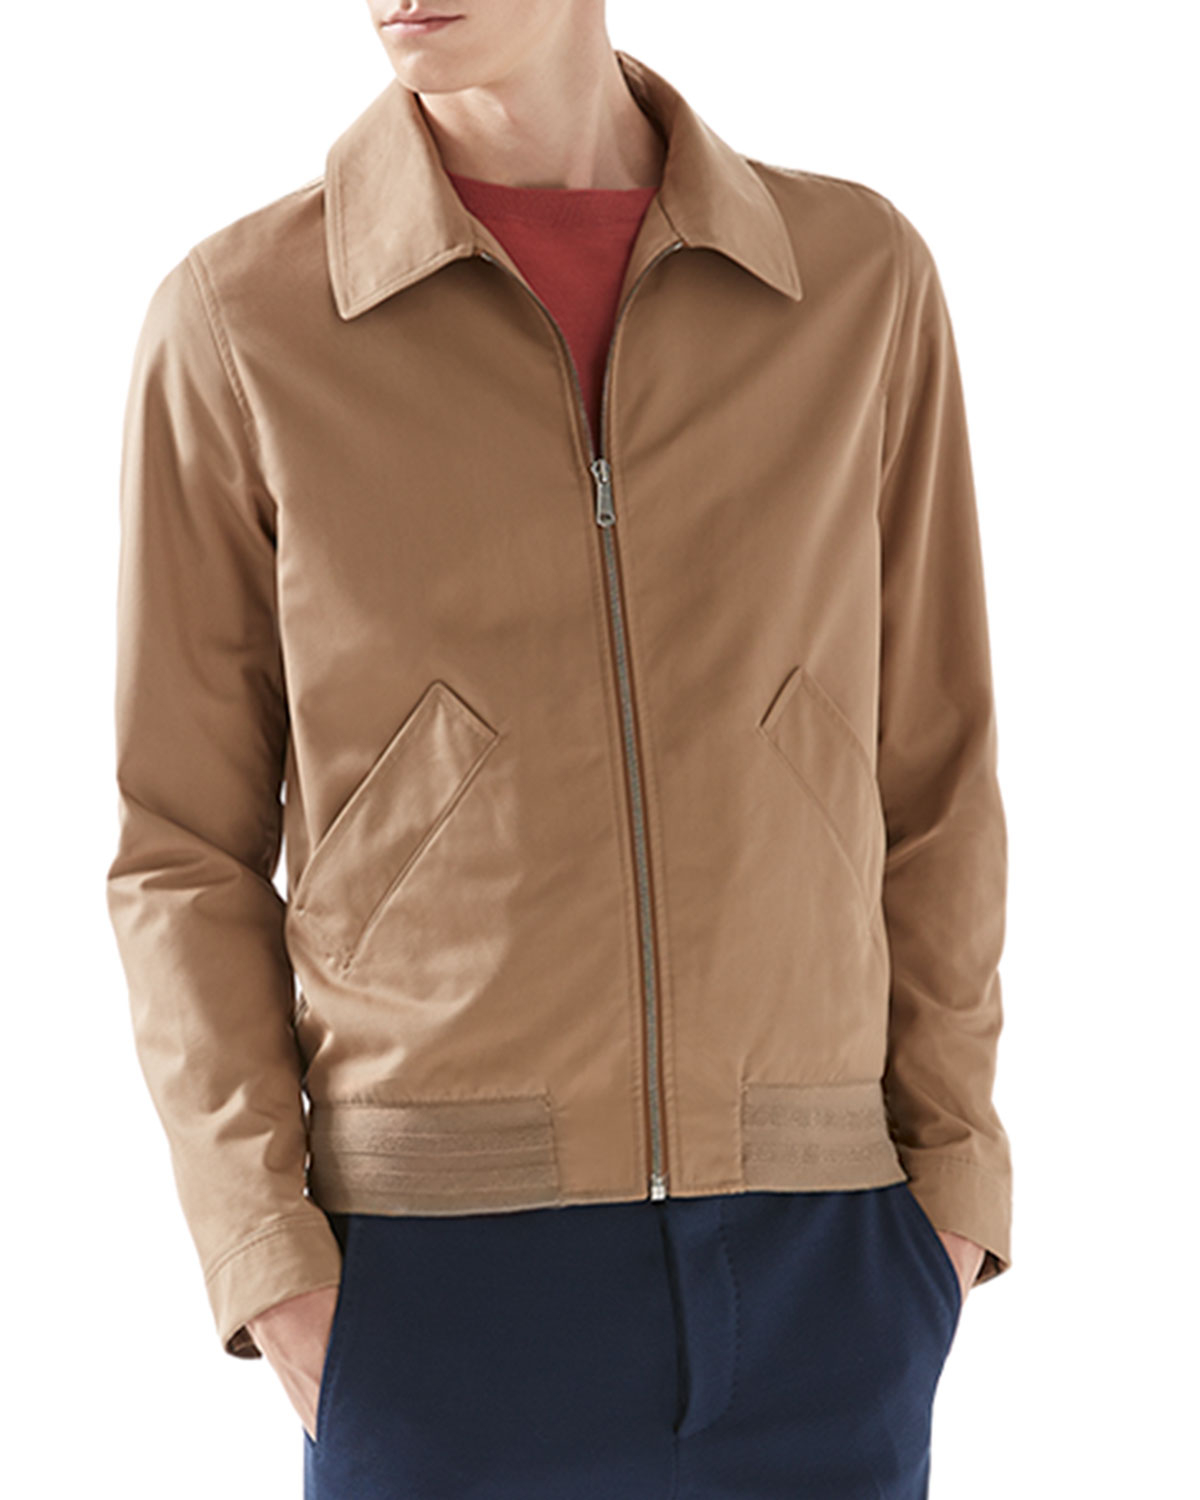 Gucci Classic Blouson Jacket In Brown For Men Lyst